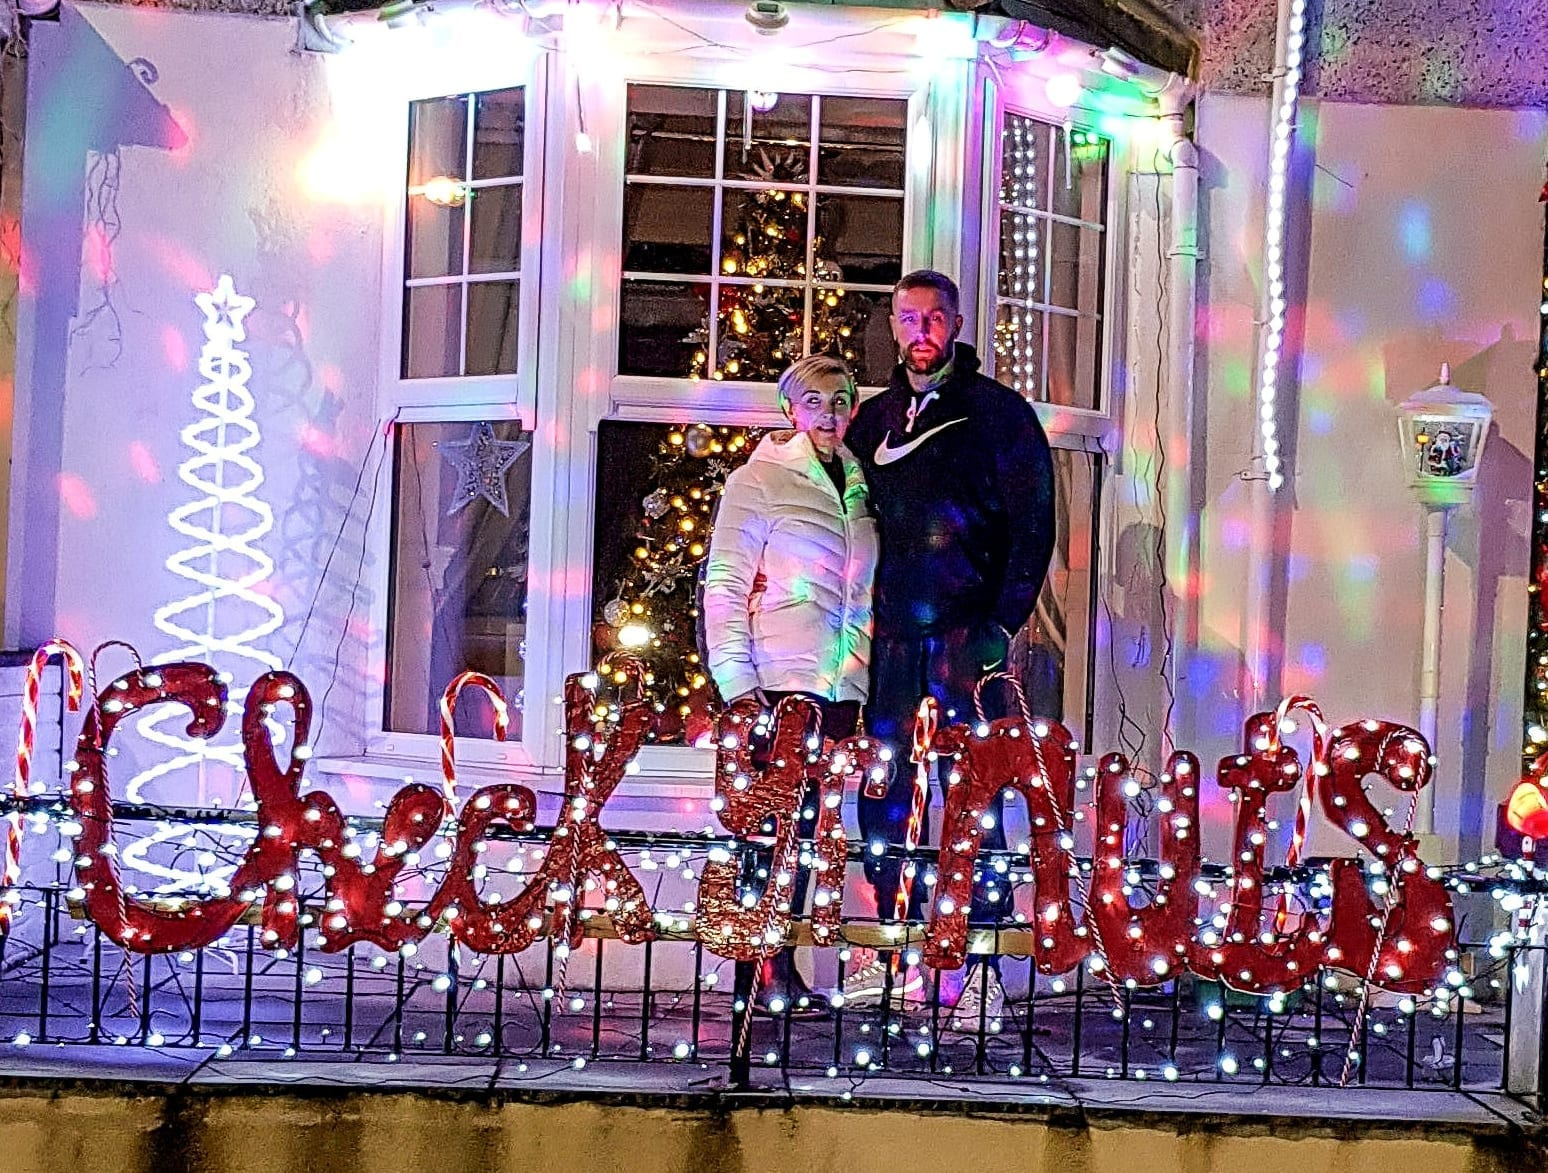 'If The Lights Can Help Just One Man Then It Has Worked' – Man Decorates Home With 'Check Your Nuts' Christmas Lights After Beating Testicular Cancer